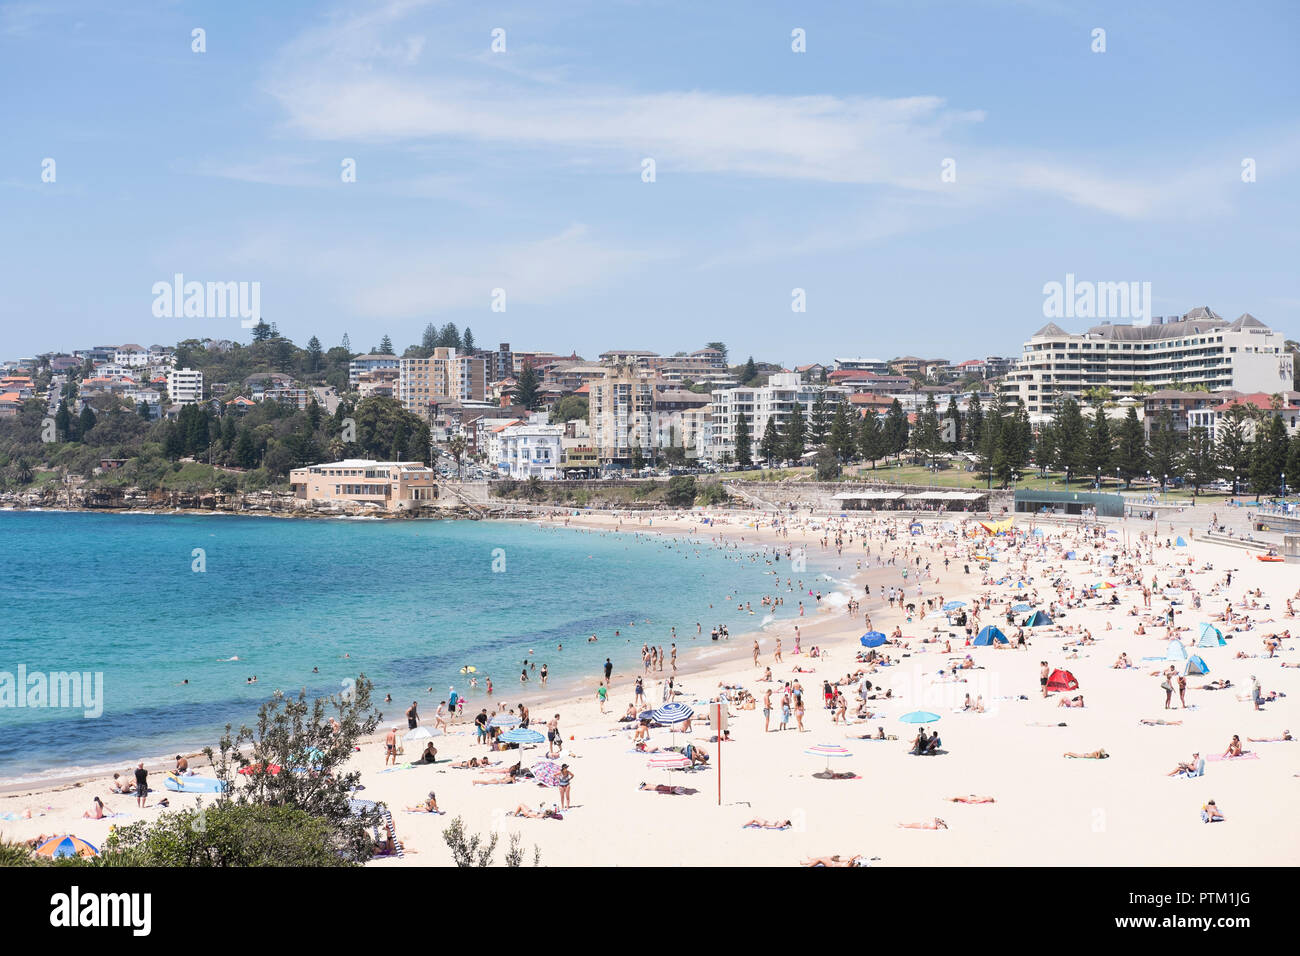 Summer at Coogee Beach. - Stock Image